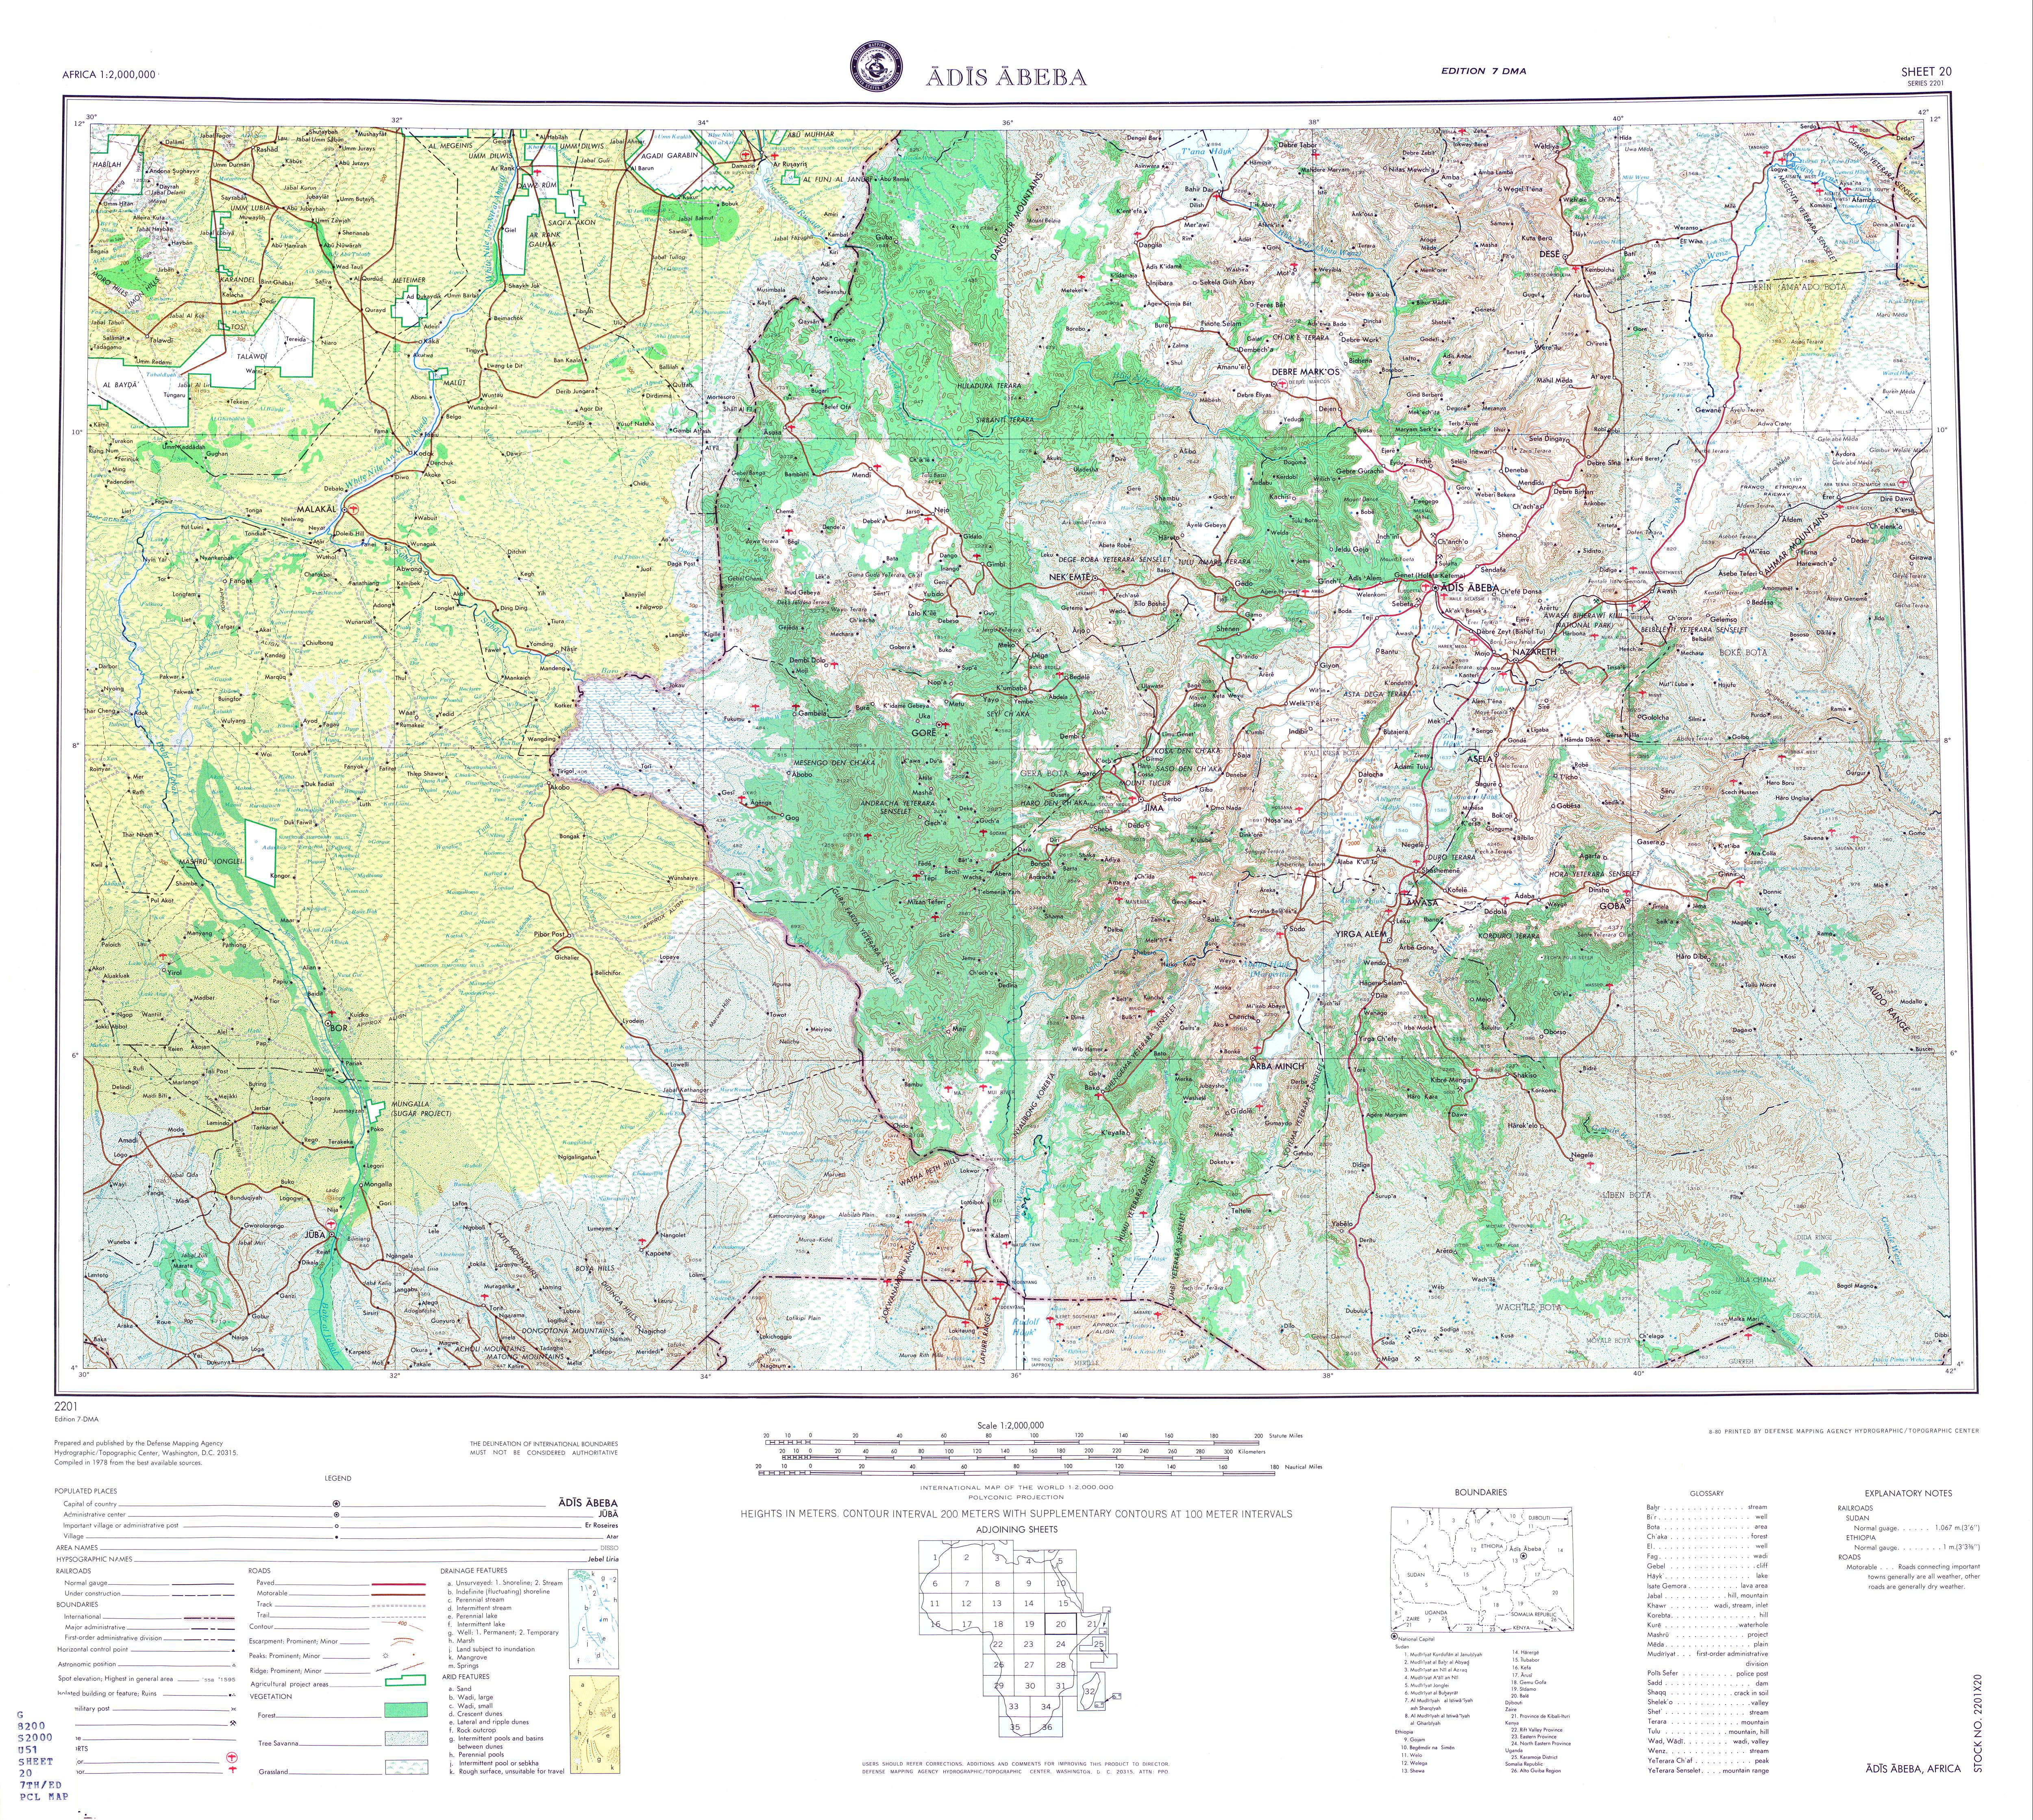 Large scale detailed topographical map of Addis Ababa region ...